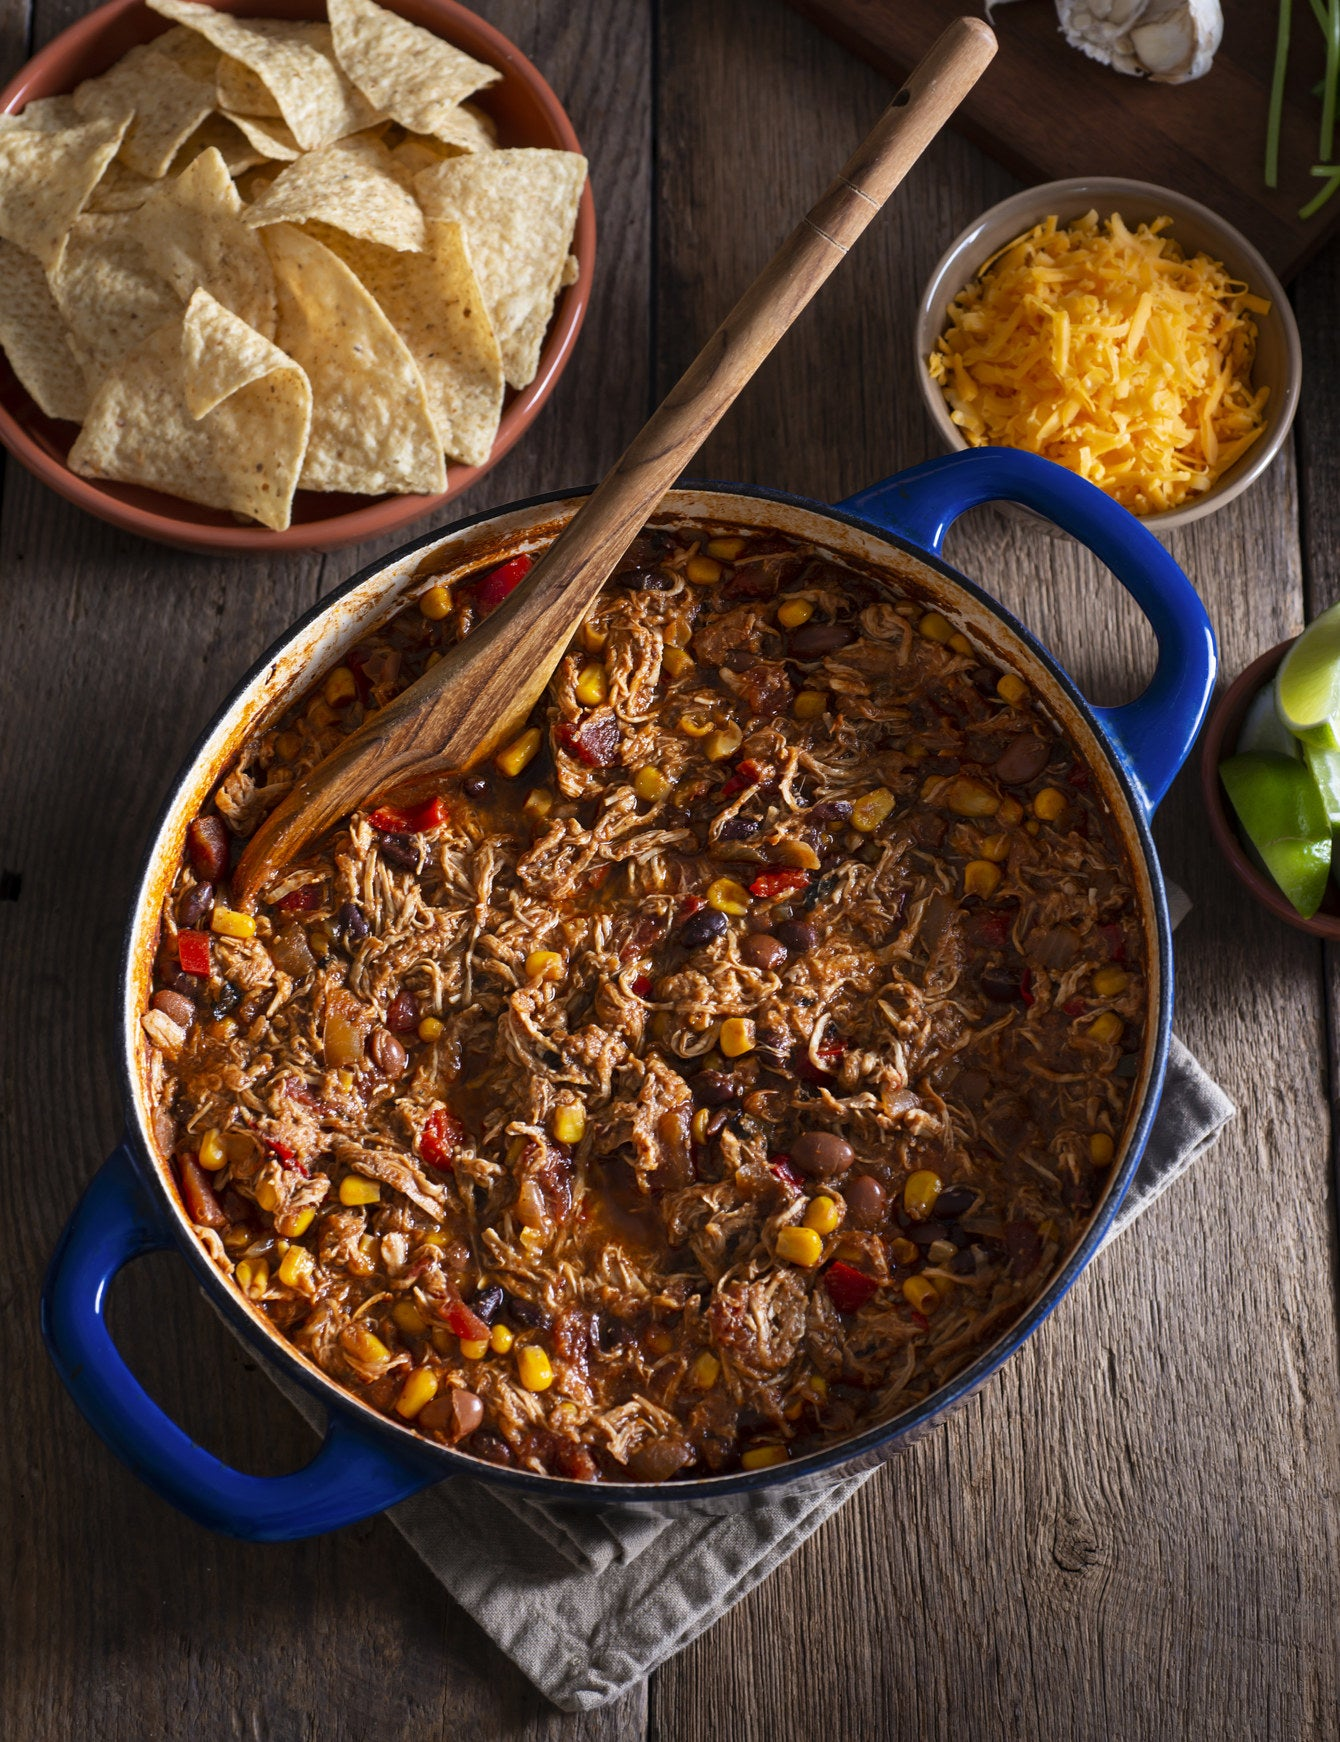 A big pot of chili with shredded chicken and cheese.